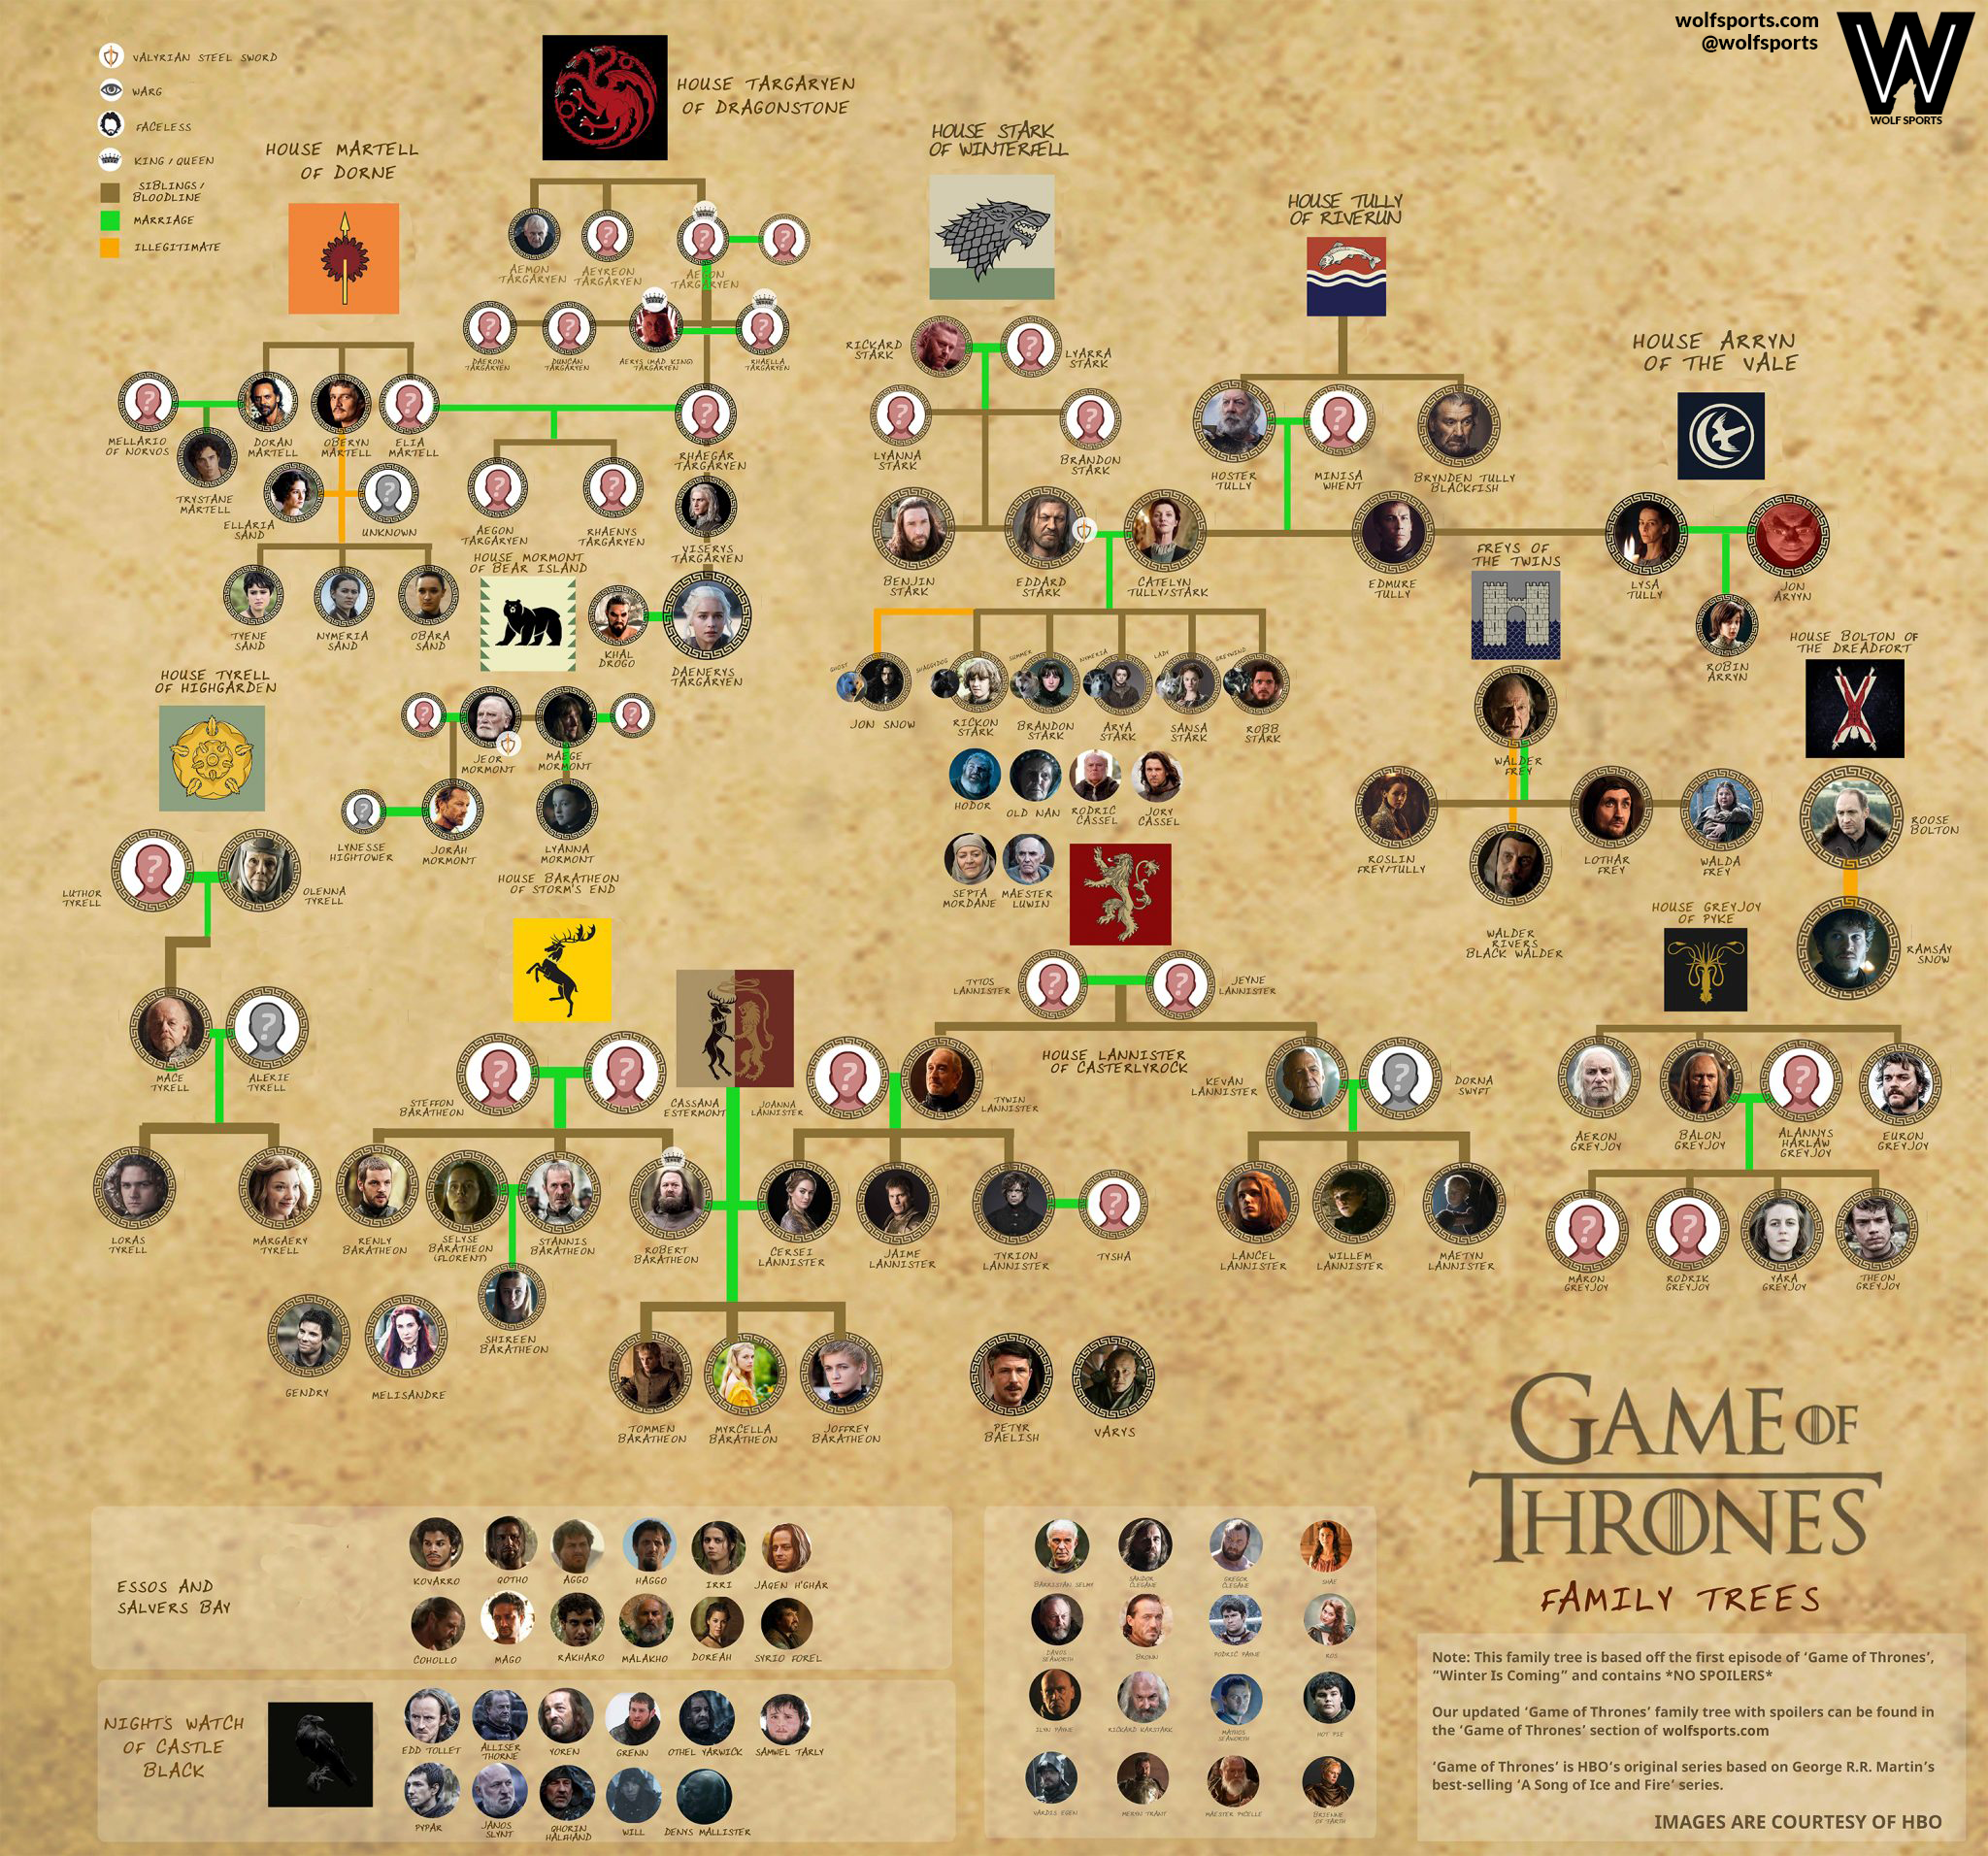 Game of Thrones Non-spoiler Family Trees - Wolf Sports